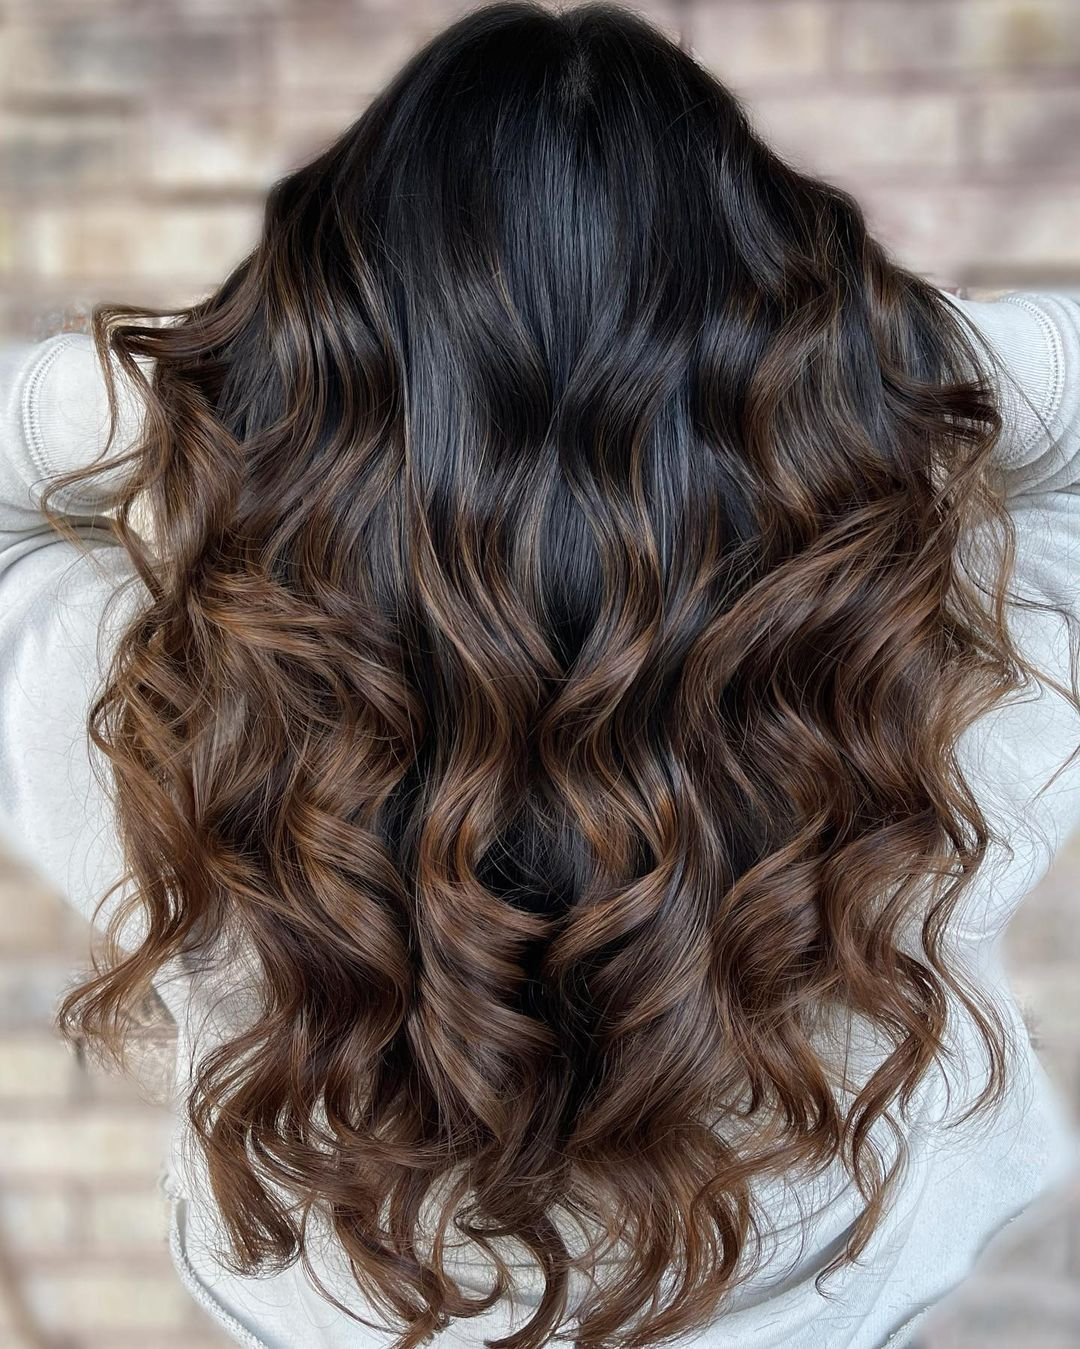 Dark Chocolate Hair with Black Roots